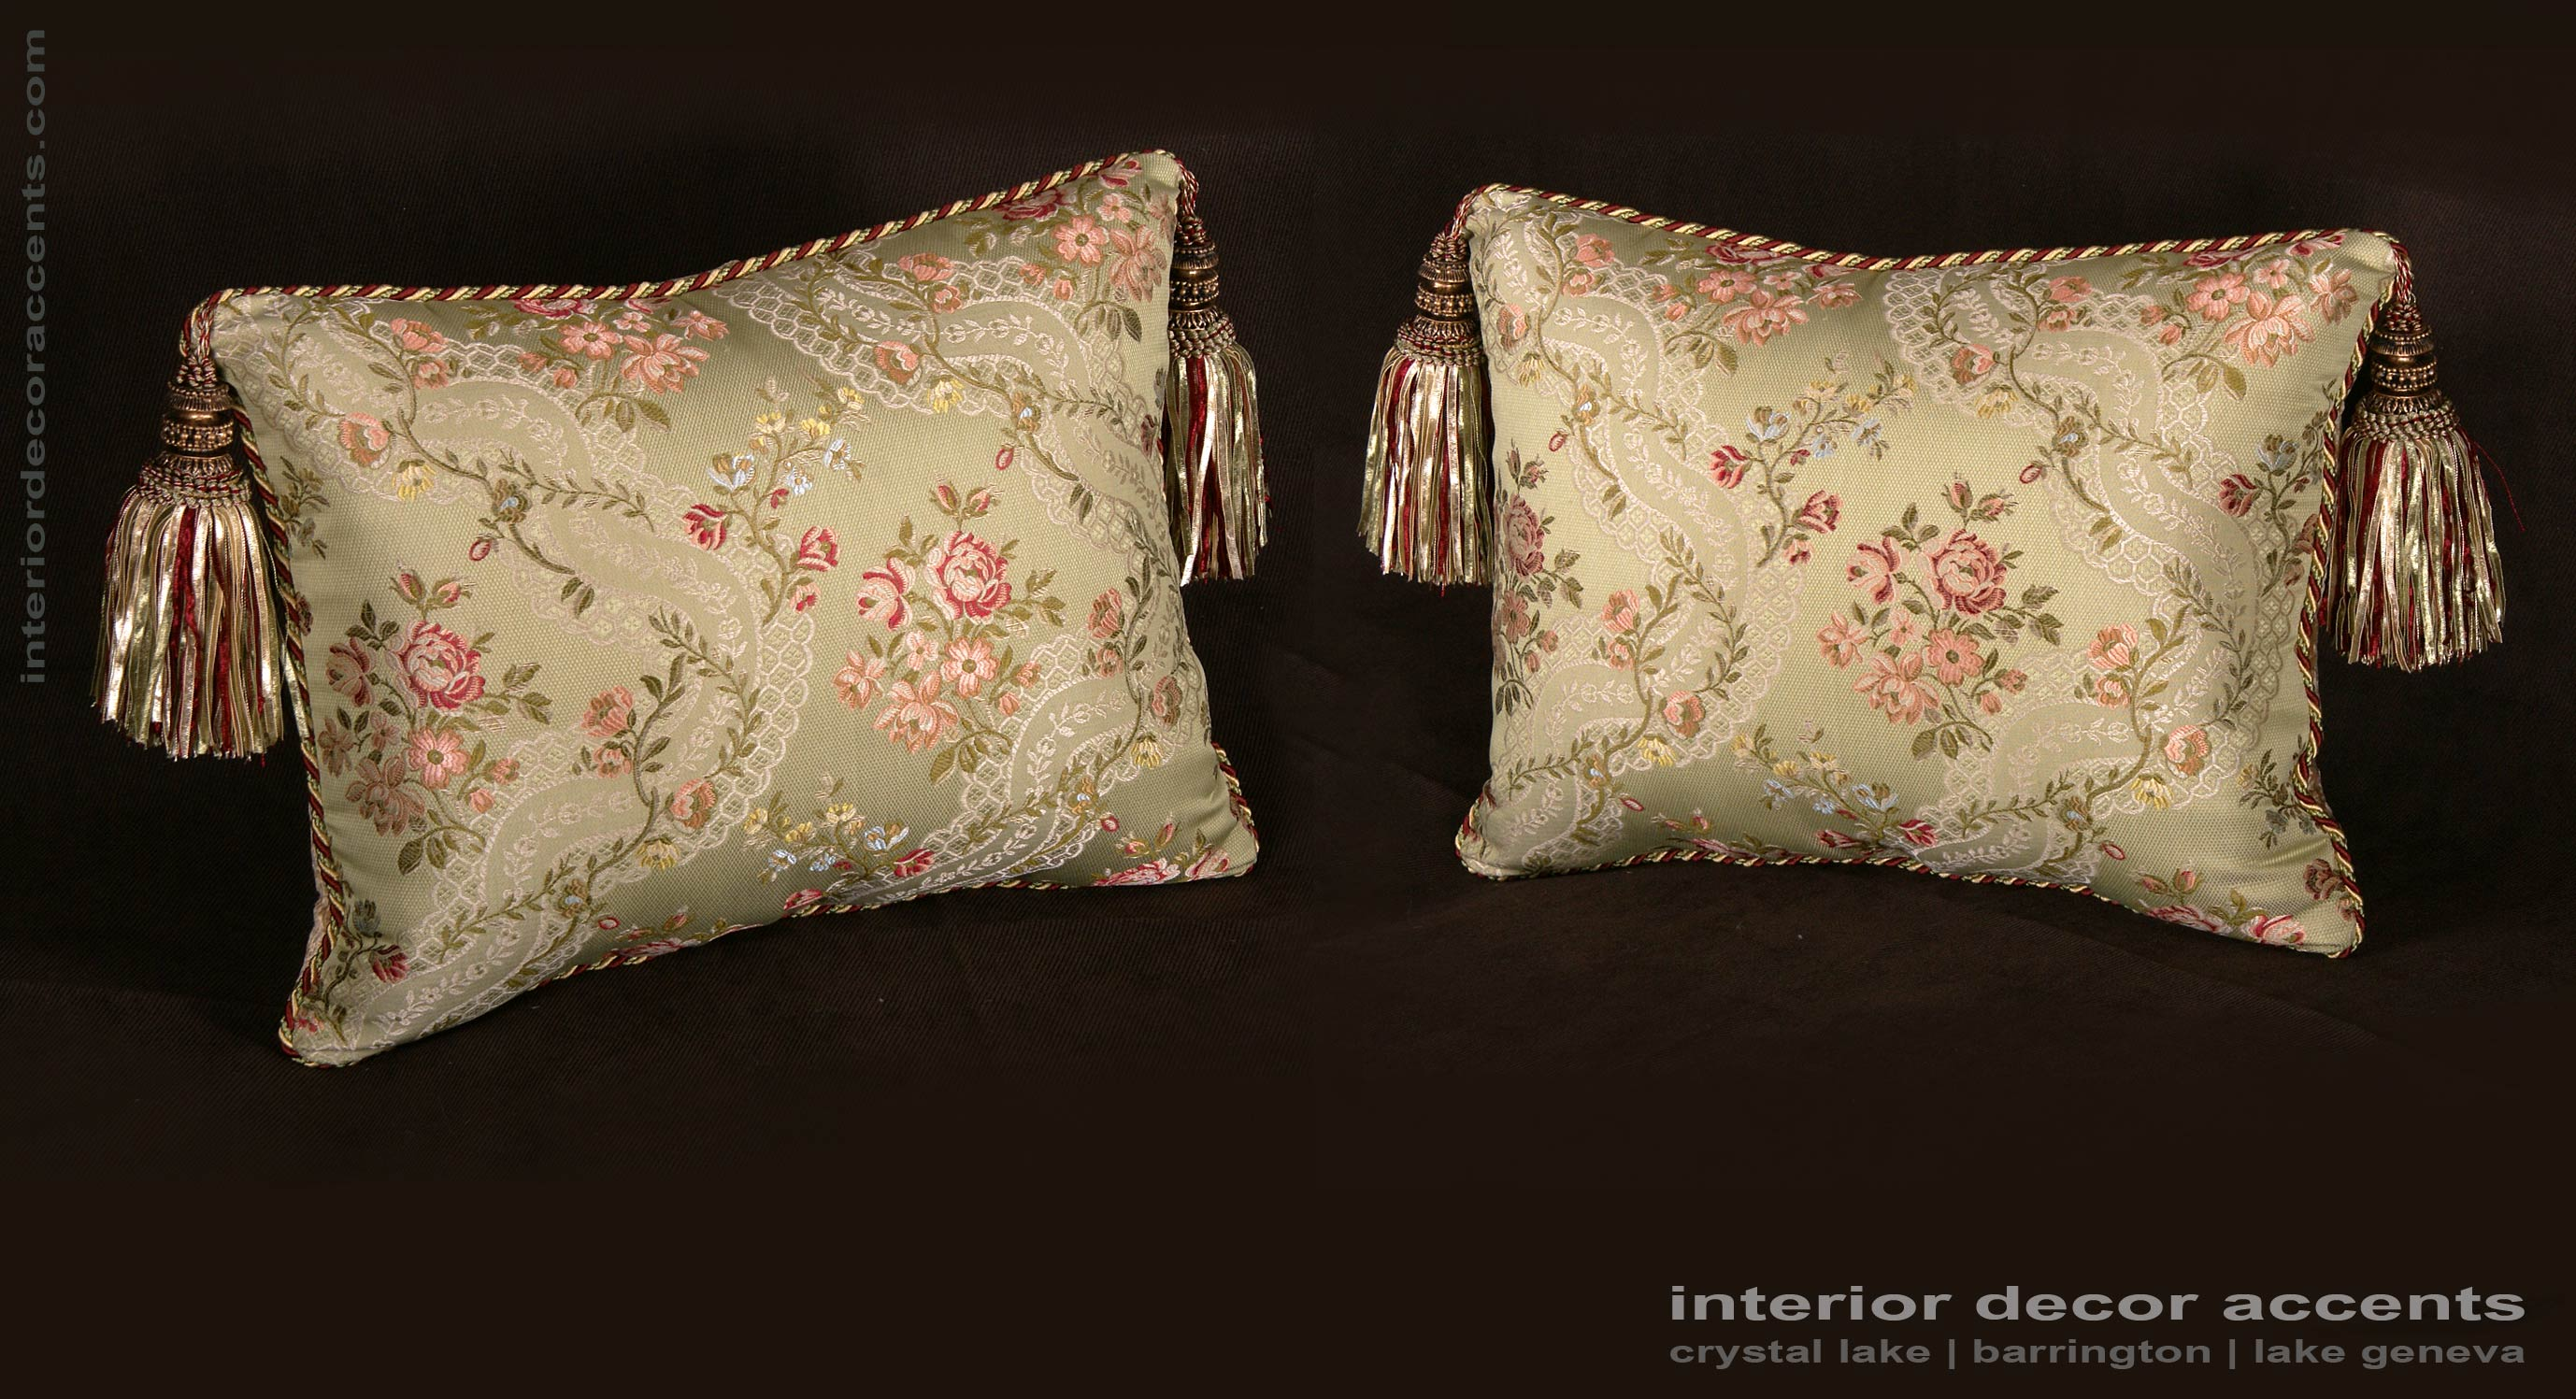 Italian Silk Brocade Decorative Designer Pillows From Lee Jofa Angelina  Lampas Fabric With Kravet Couture Backing